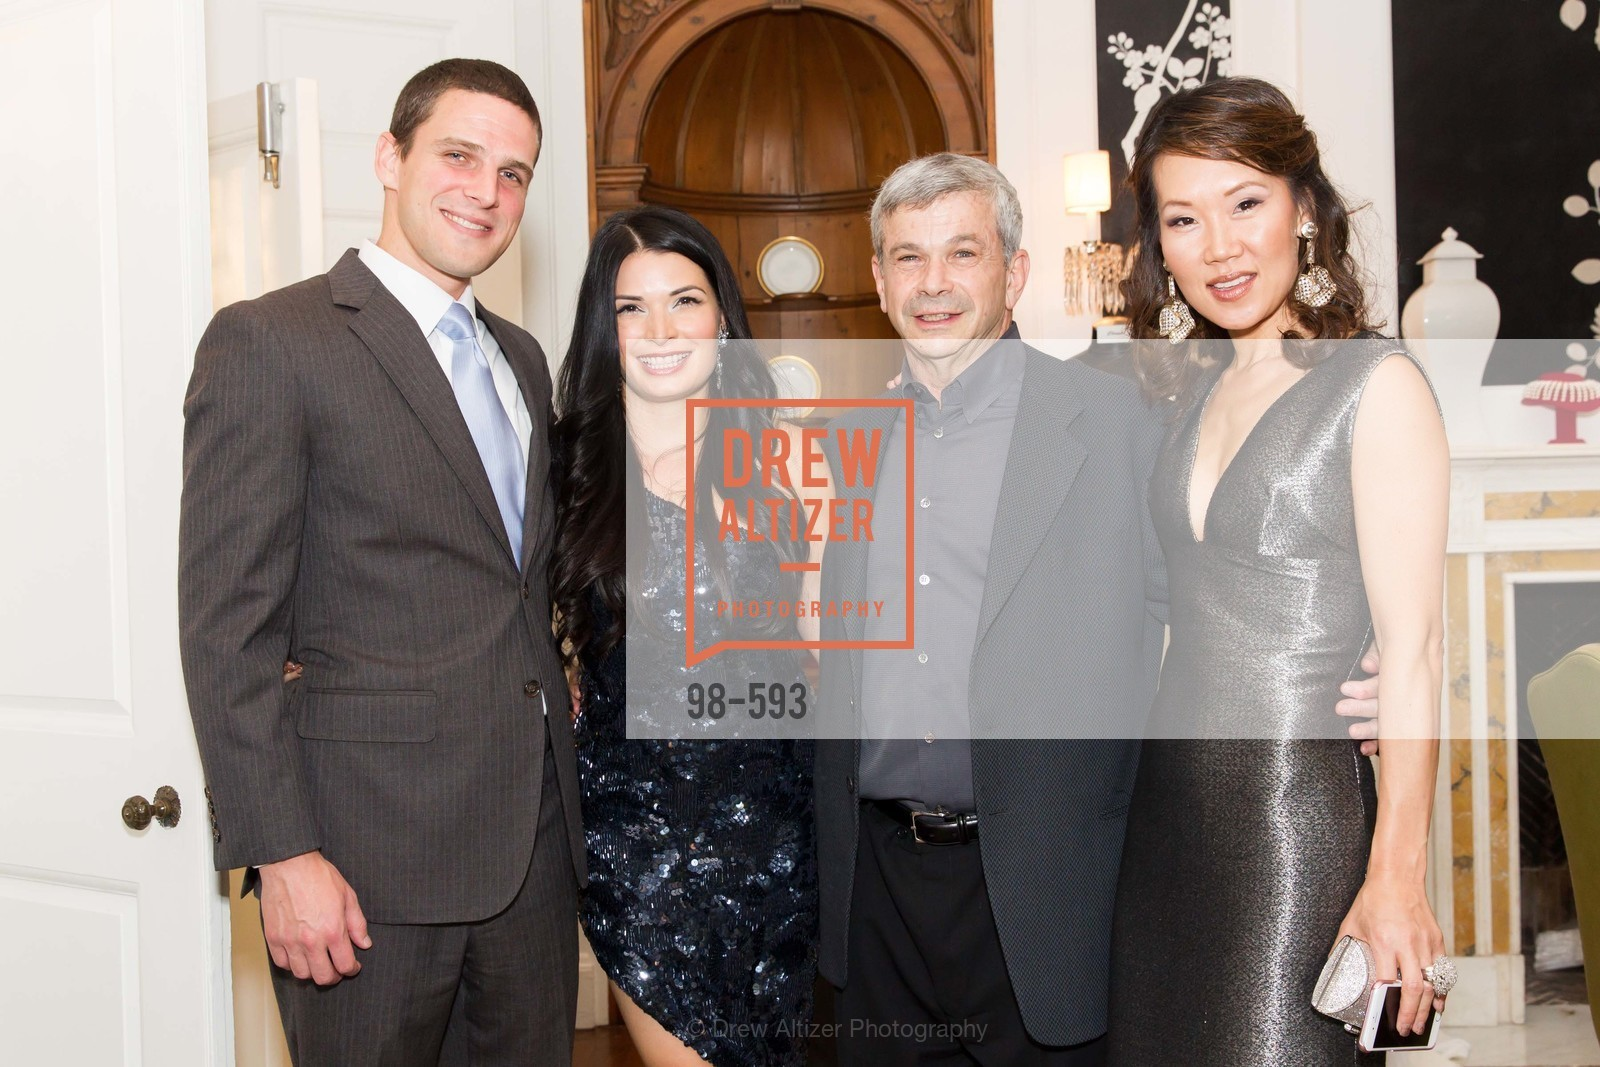 Benjamin Schneider, Skye Drynan, Richard Beleson, COUTURE FOR A CAUSE, US, October 4th, 2014,Drew Altizer, Drew Altizer Photography, full-service agency, private events, San Francisco photographer, photographer california